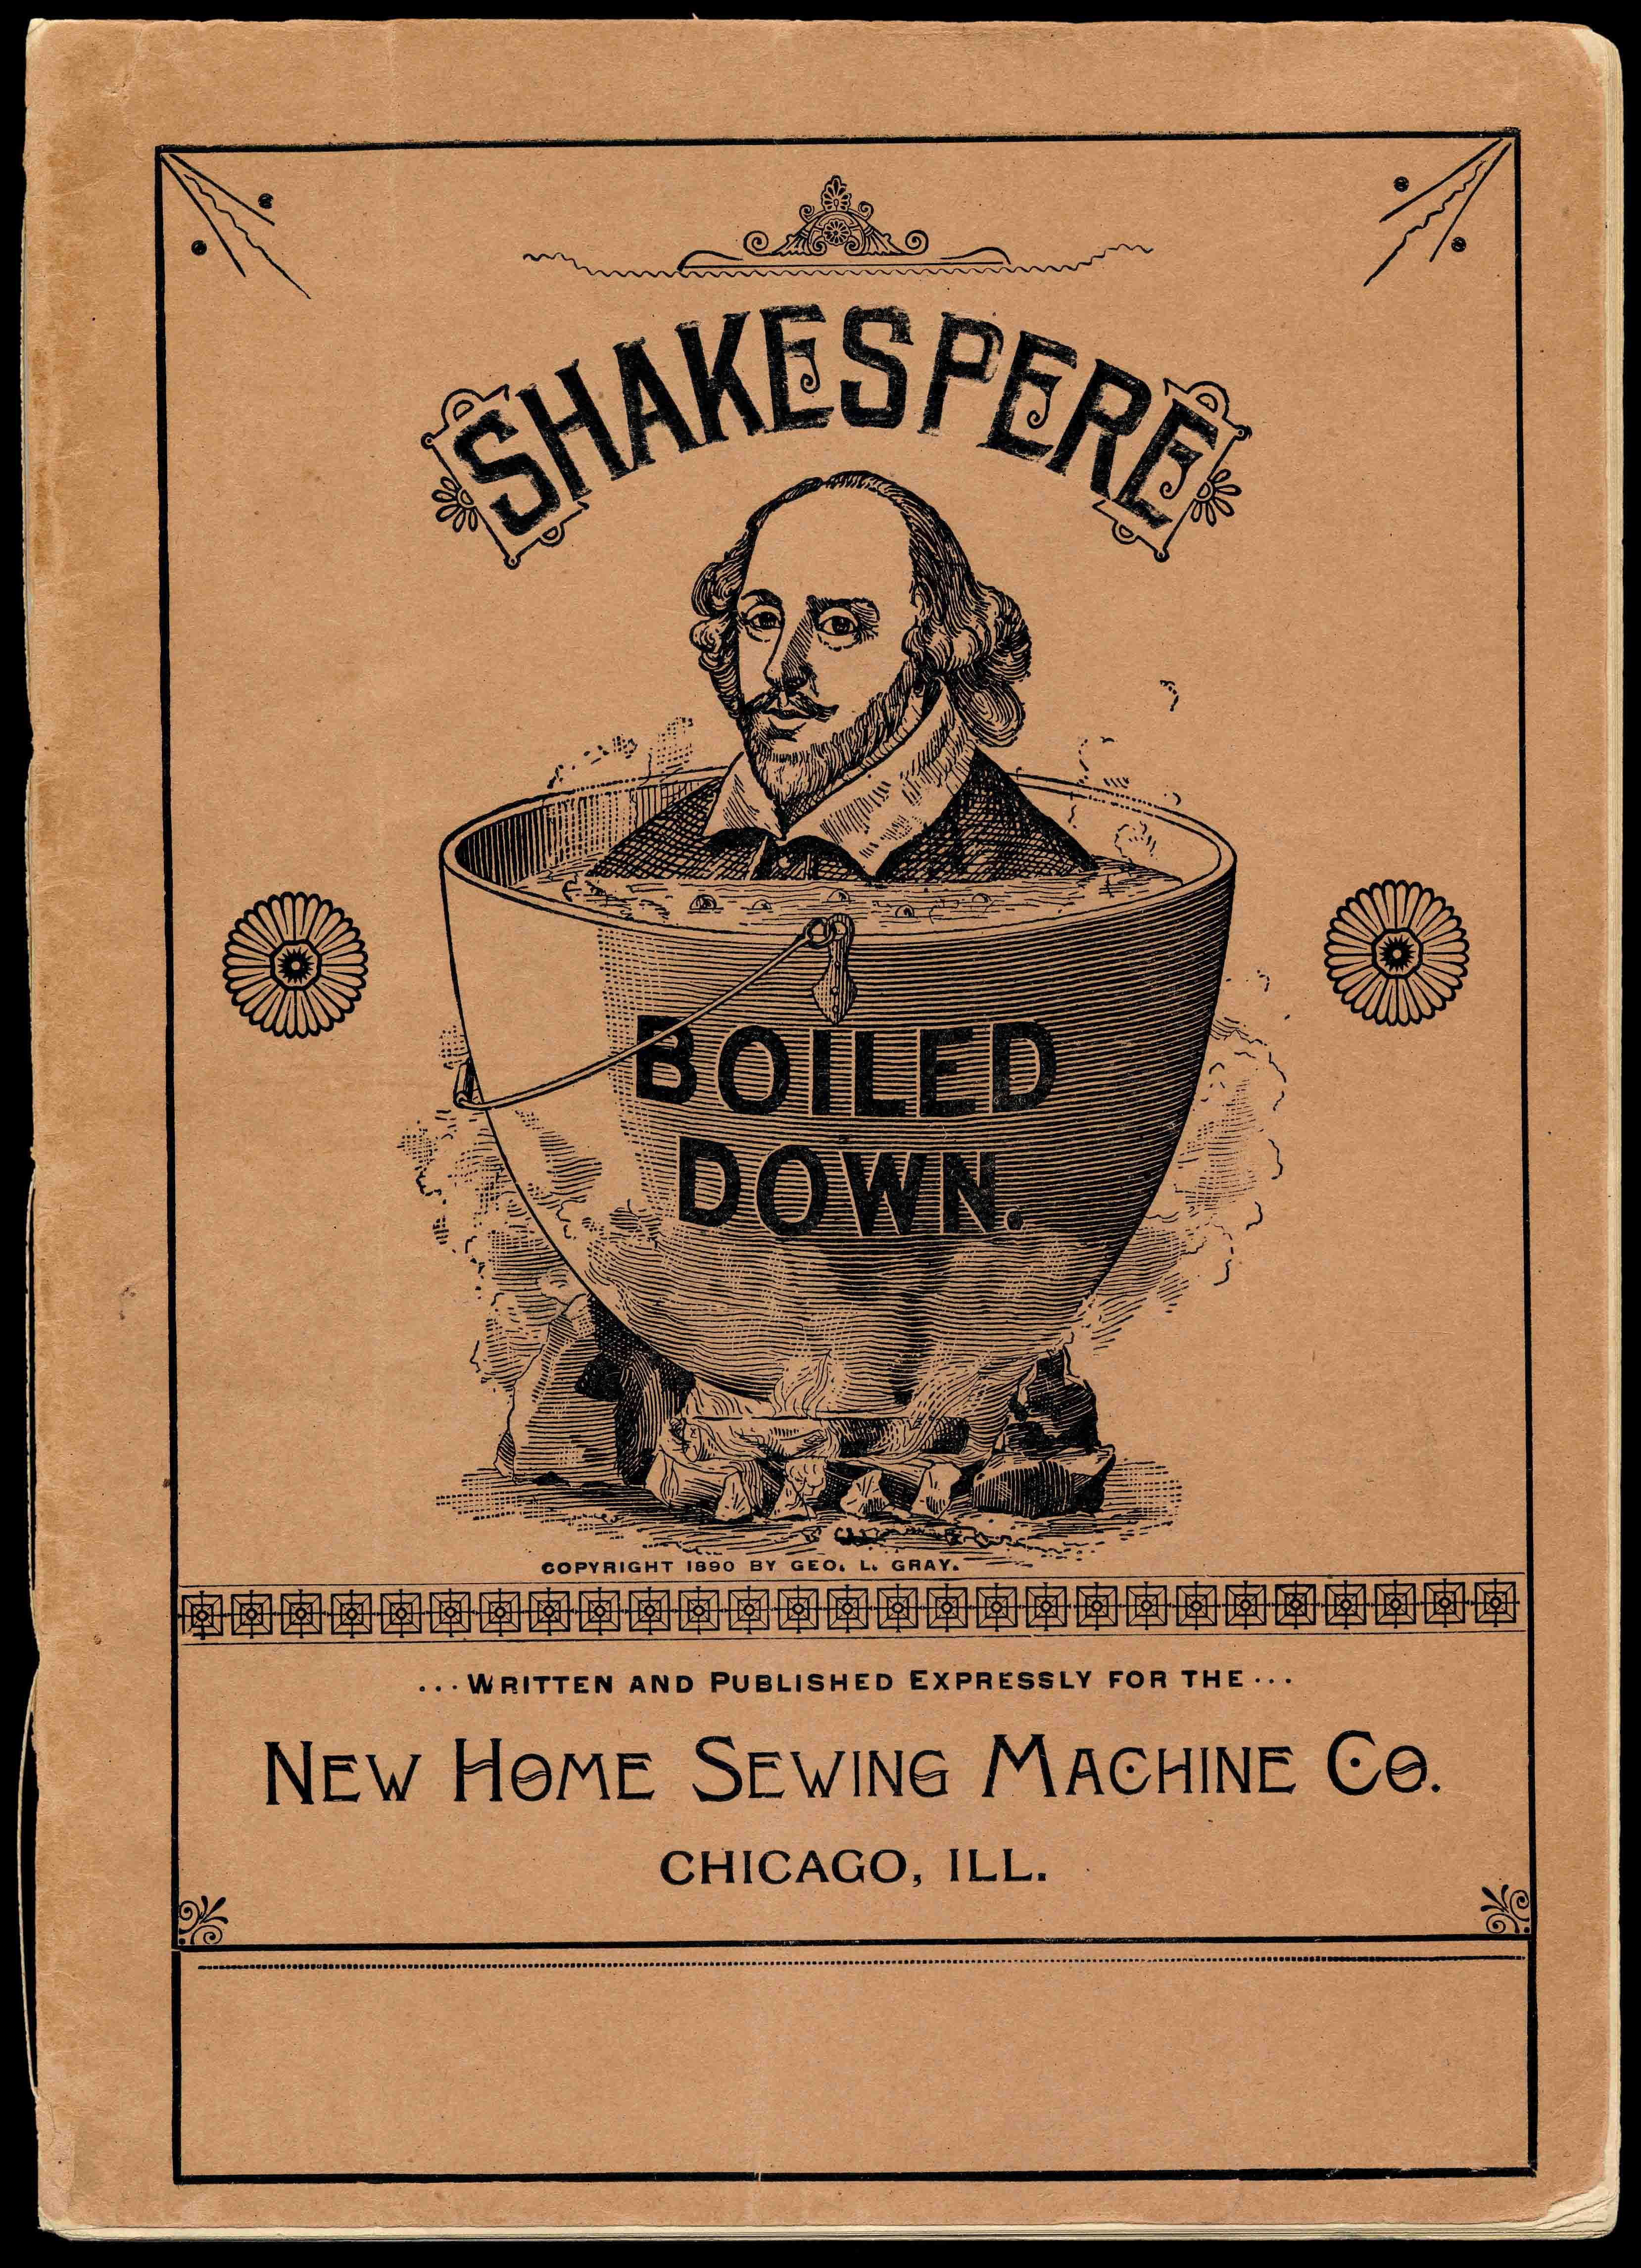 Shakespeare Boiled Down, New Home Sewing Machine Co. Pamphlet